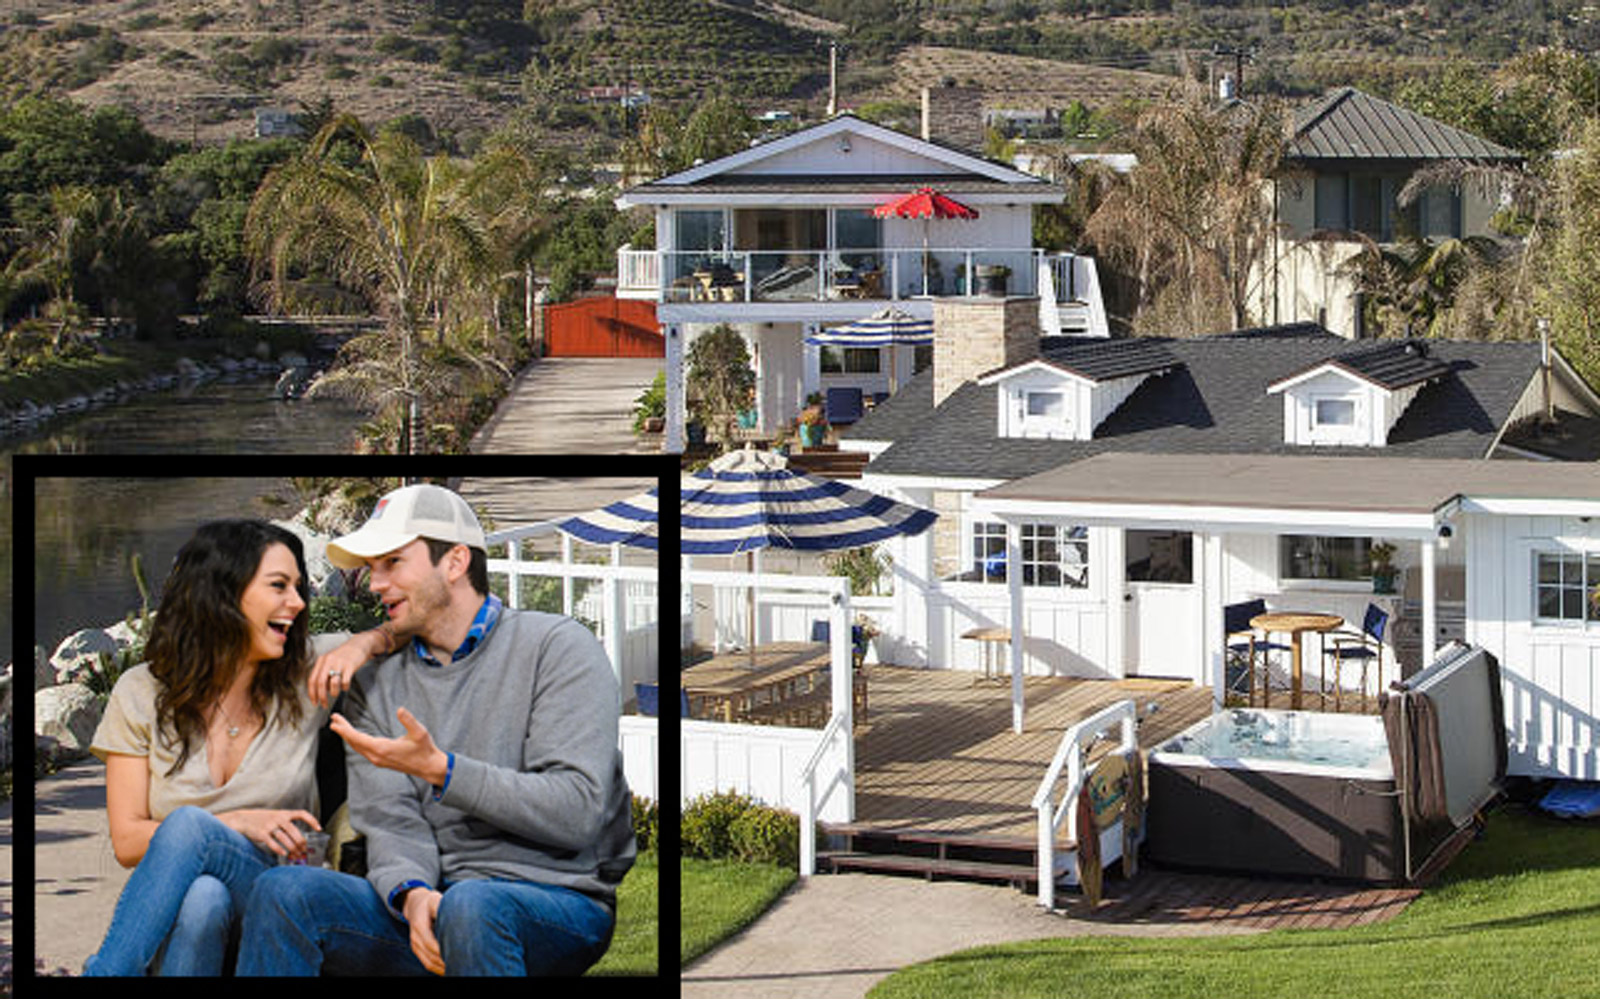 Take a Look Inside Mila Kunis and Ashton Kutcher's New $10-million Beach House